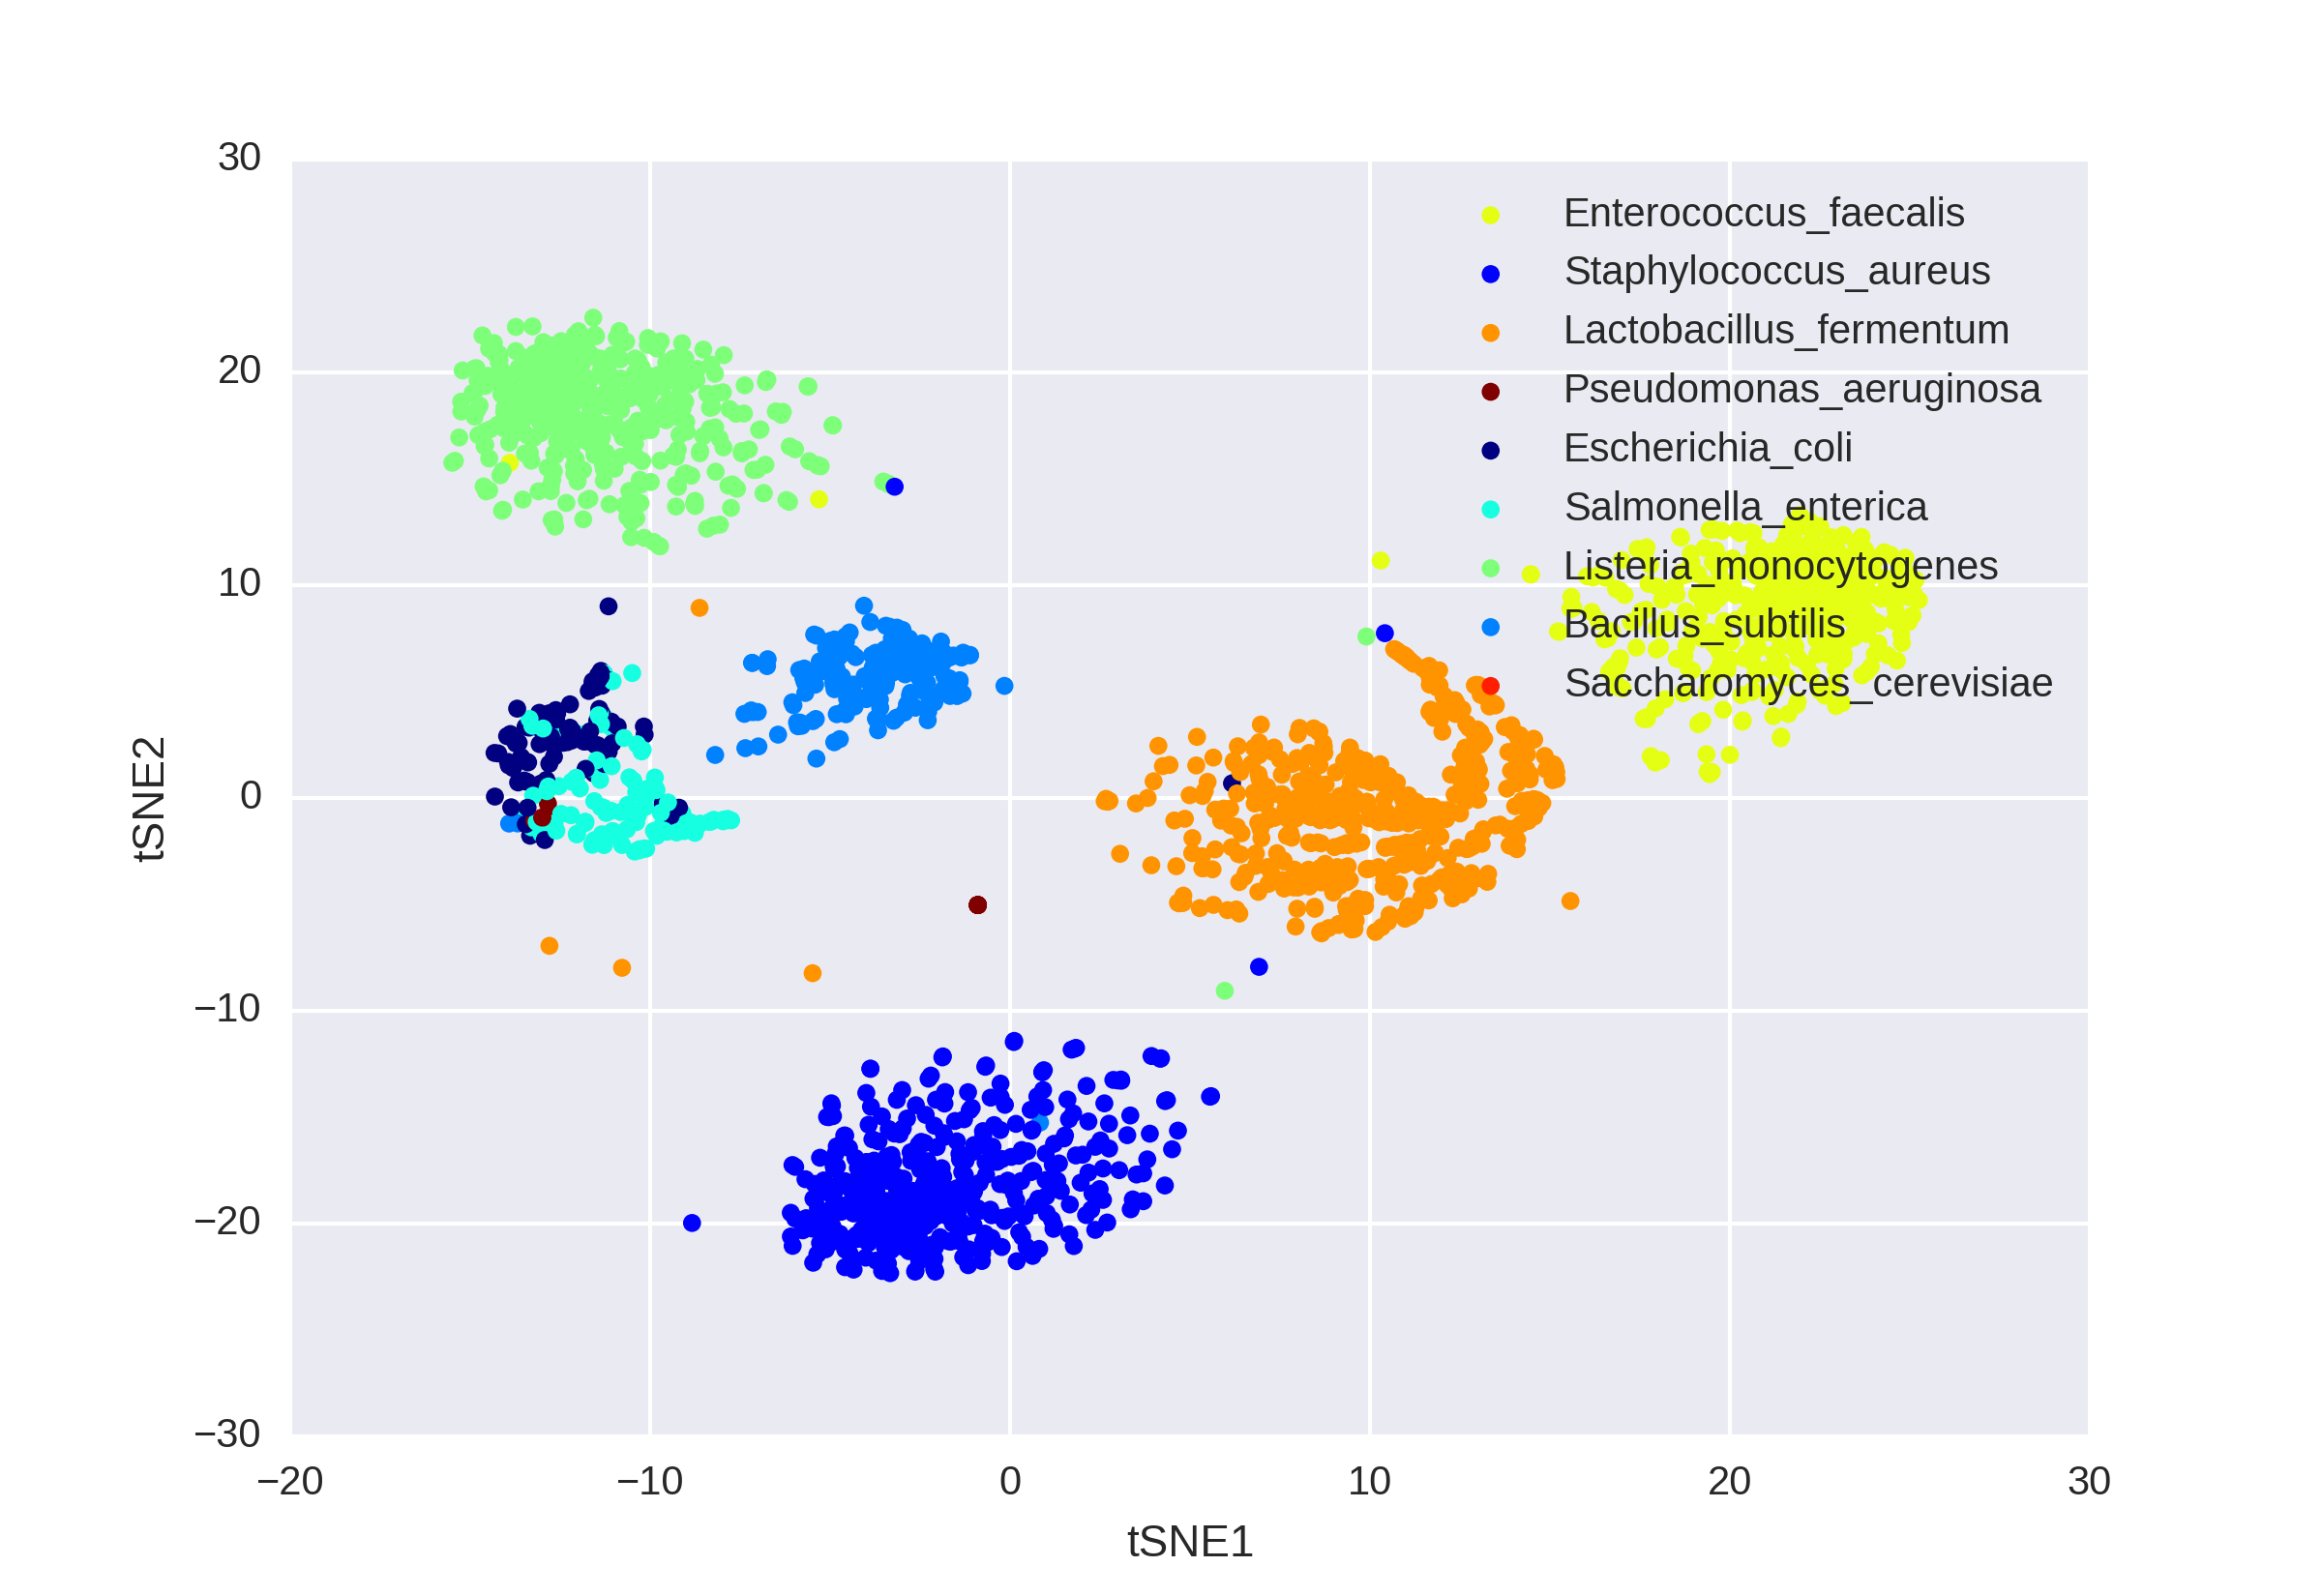 Using connectivity information from single-cell barcodes, contigs from different bacterial species cluster together following dimensionality reduction